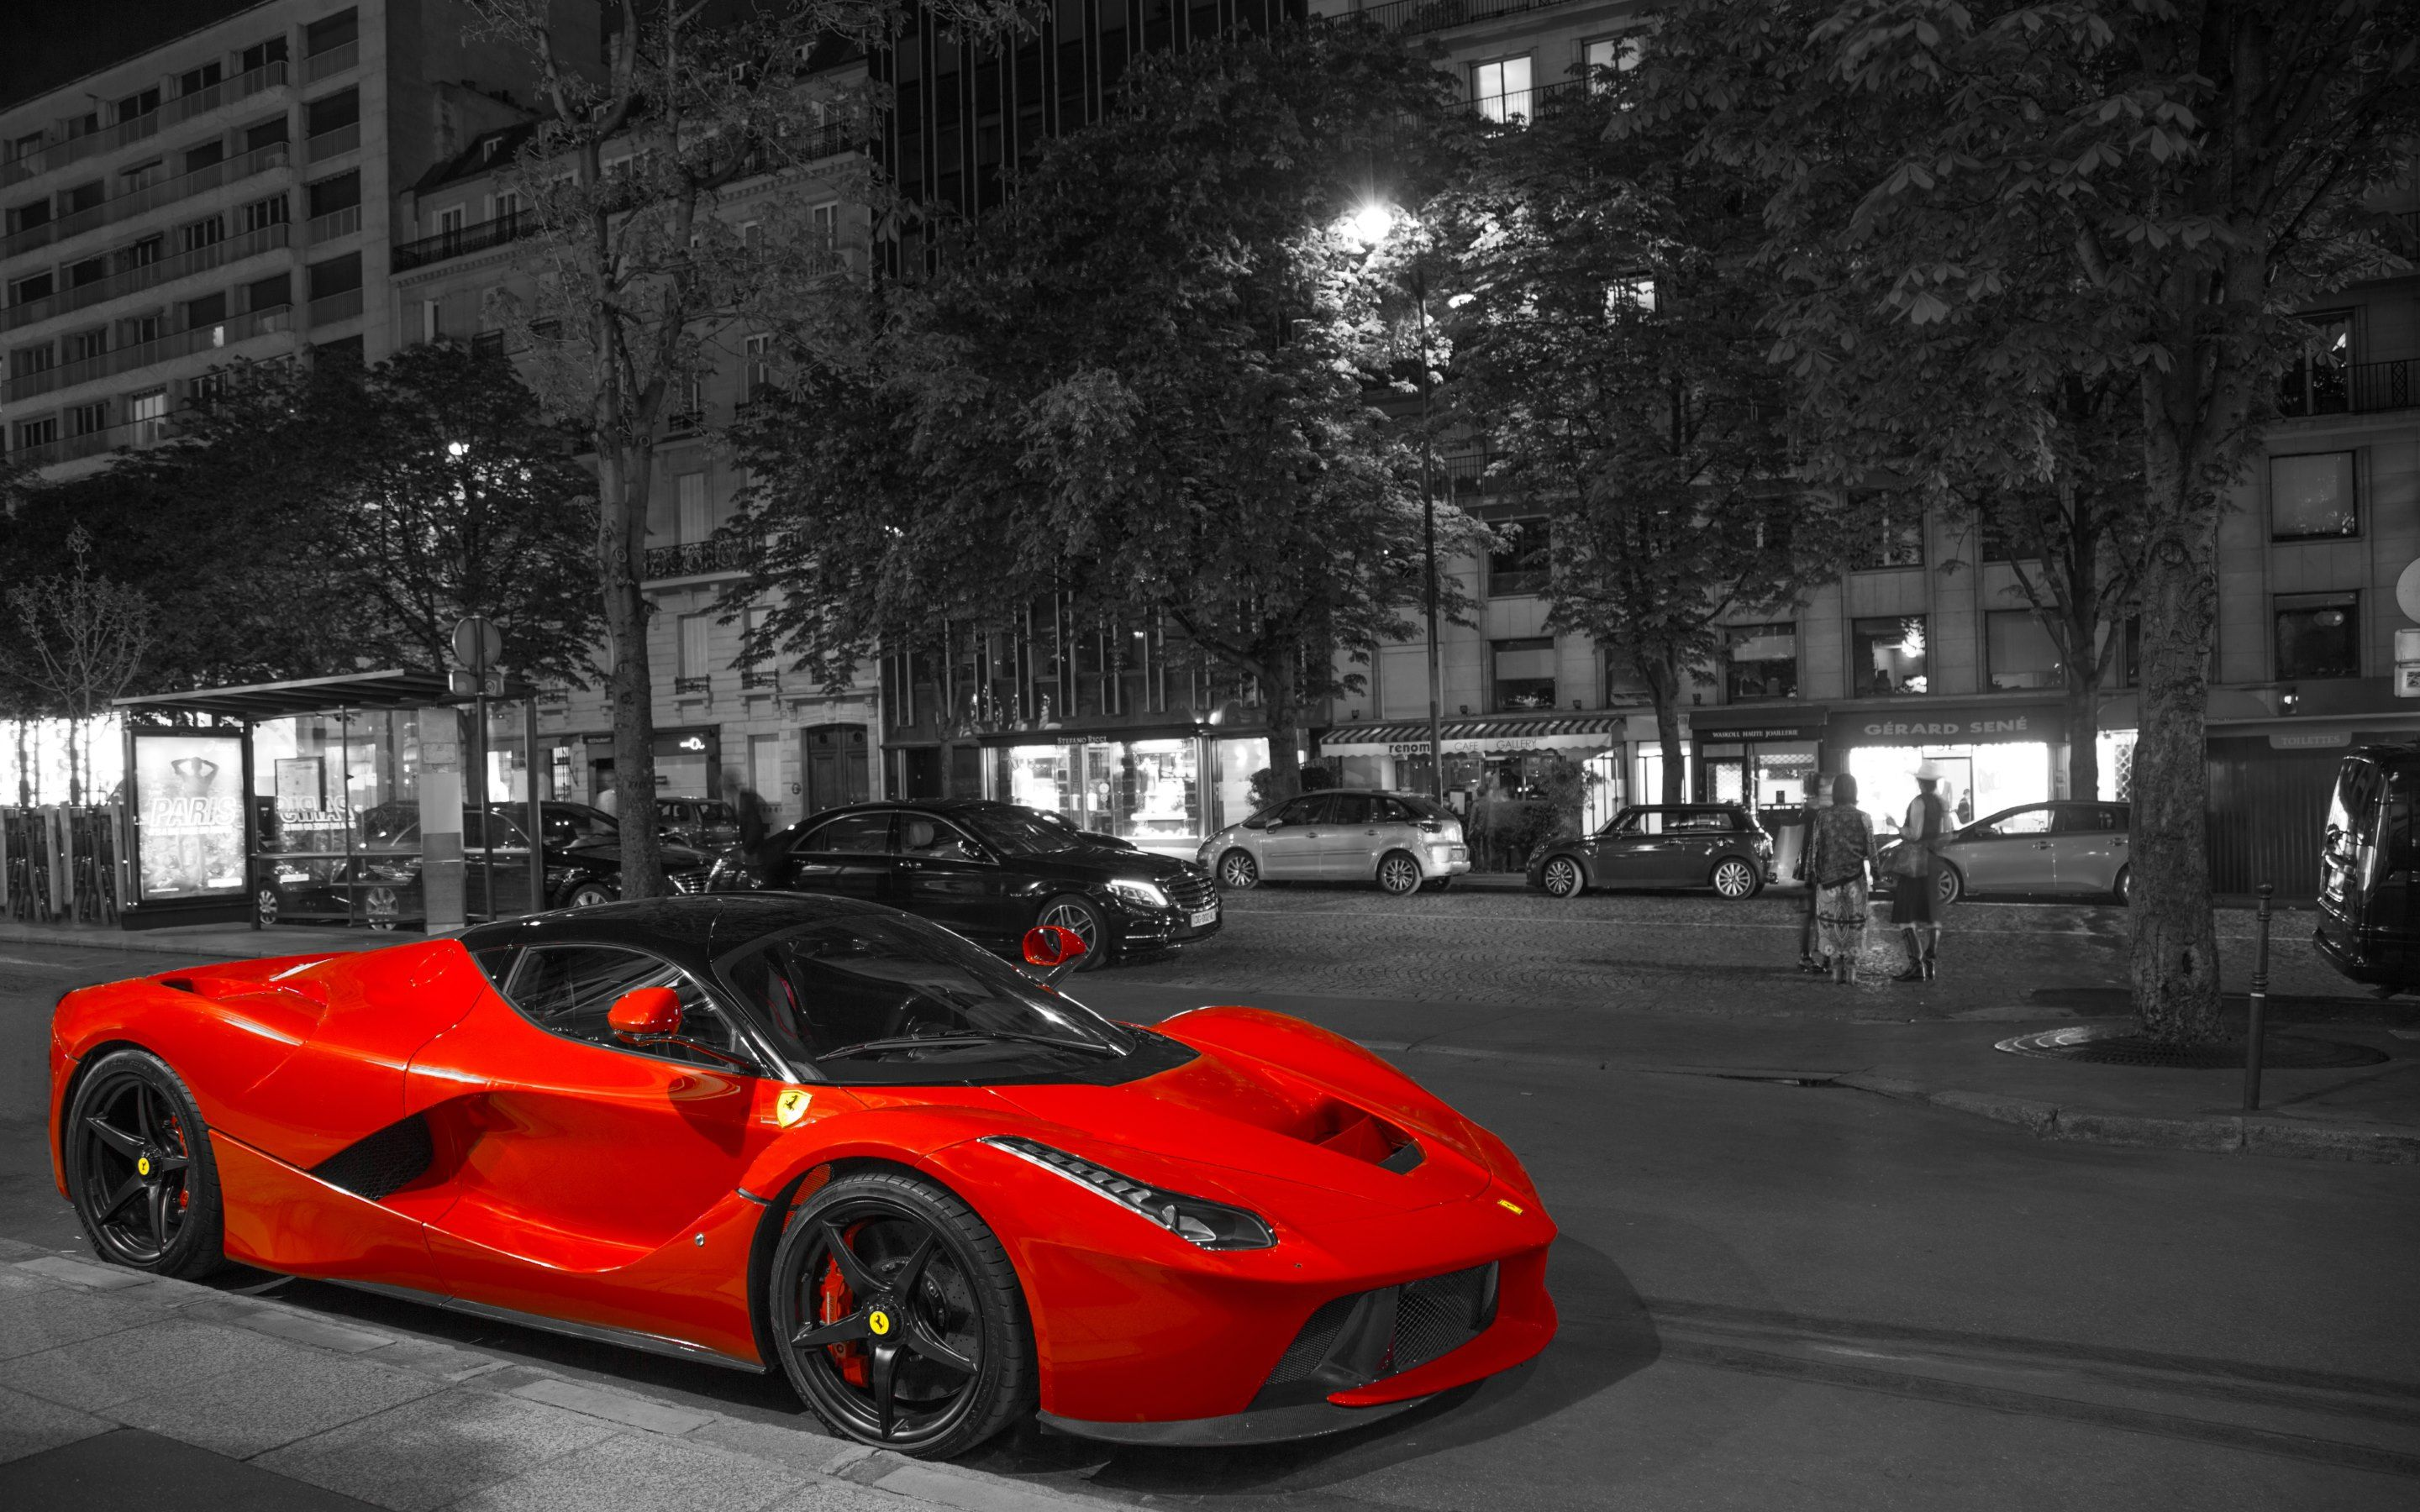 Laferrari Wallpaper For Iphone #xYc | Cars | Pinterest | Wallpaper